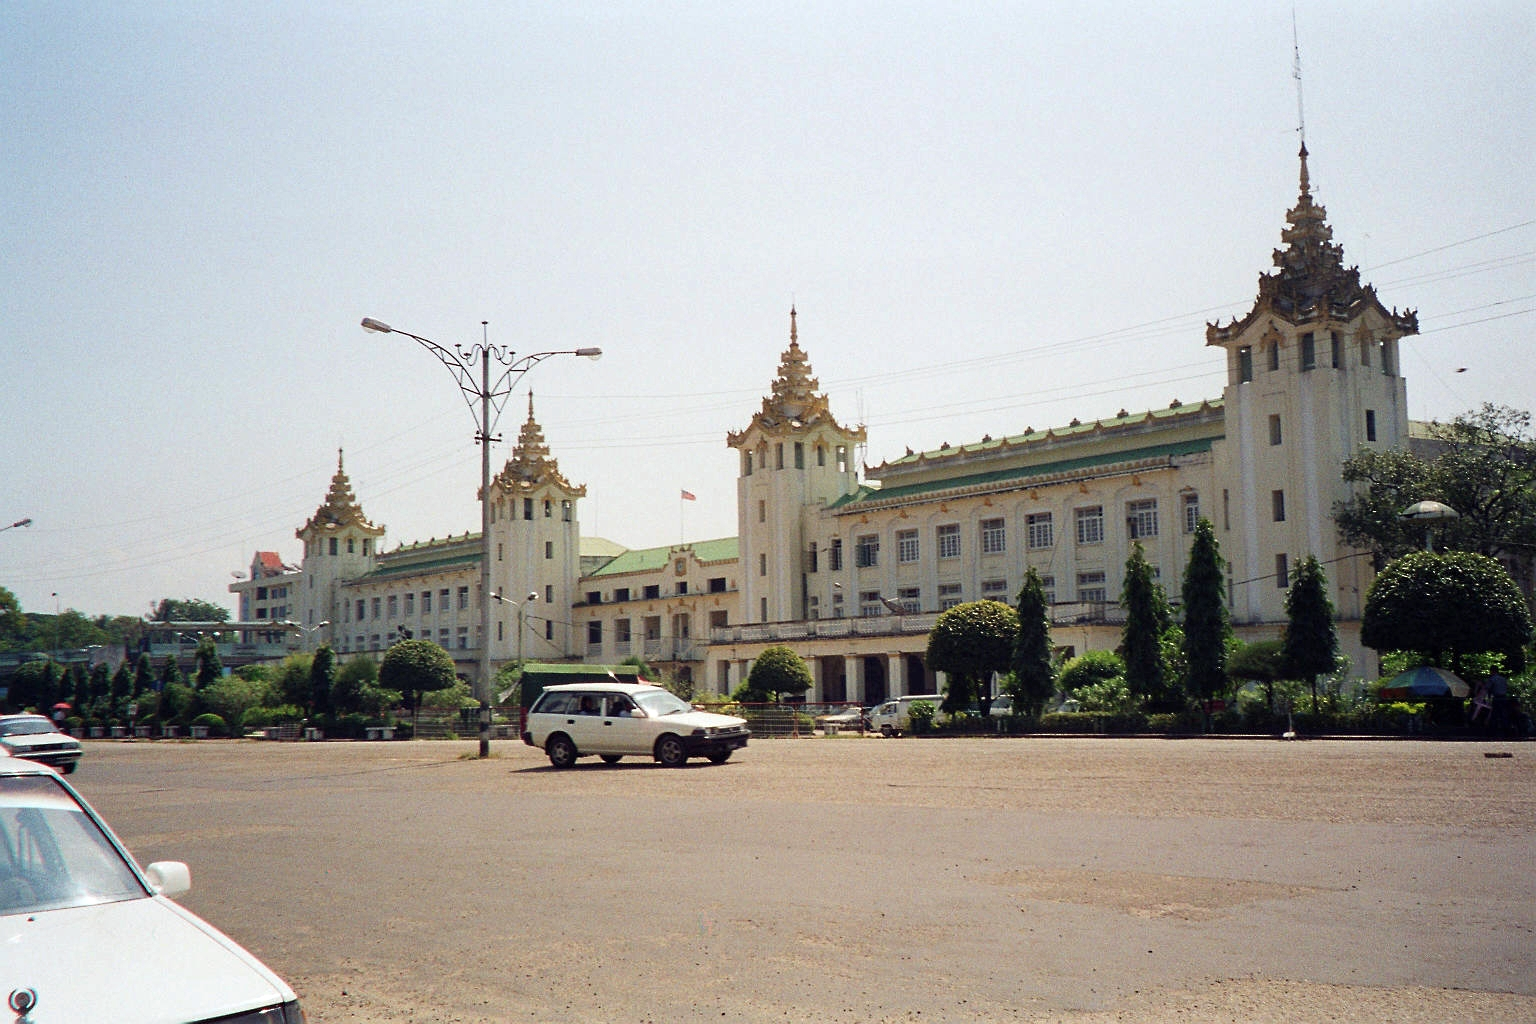 Yangon Myanmar  City new picture : Original file ‎ 1,536 × 1,024 pixels, file size: 896 KB, MIME type ...